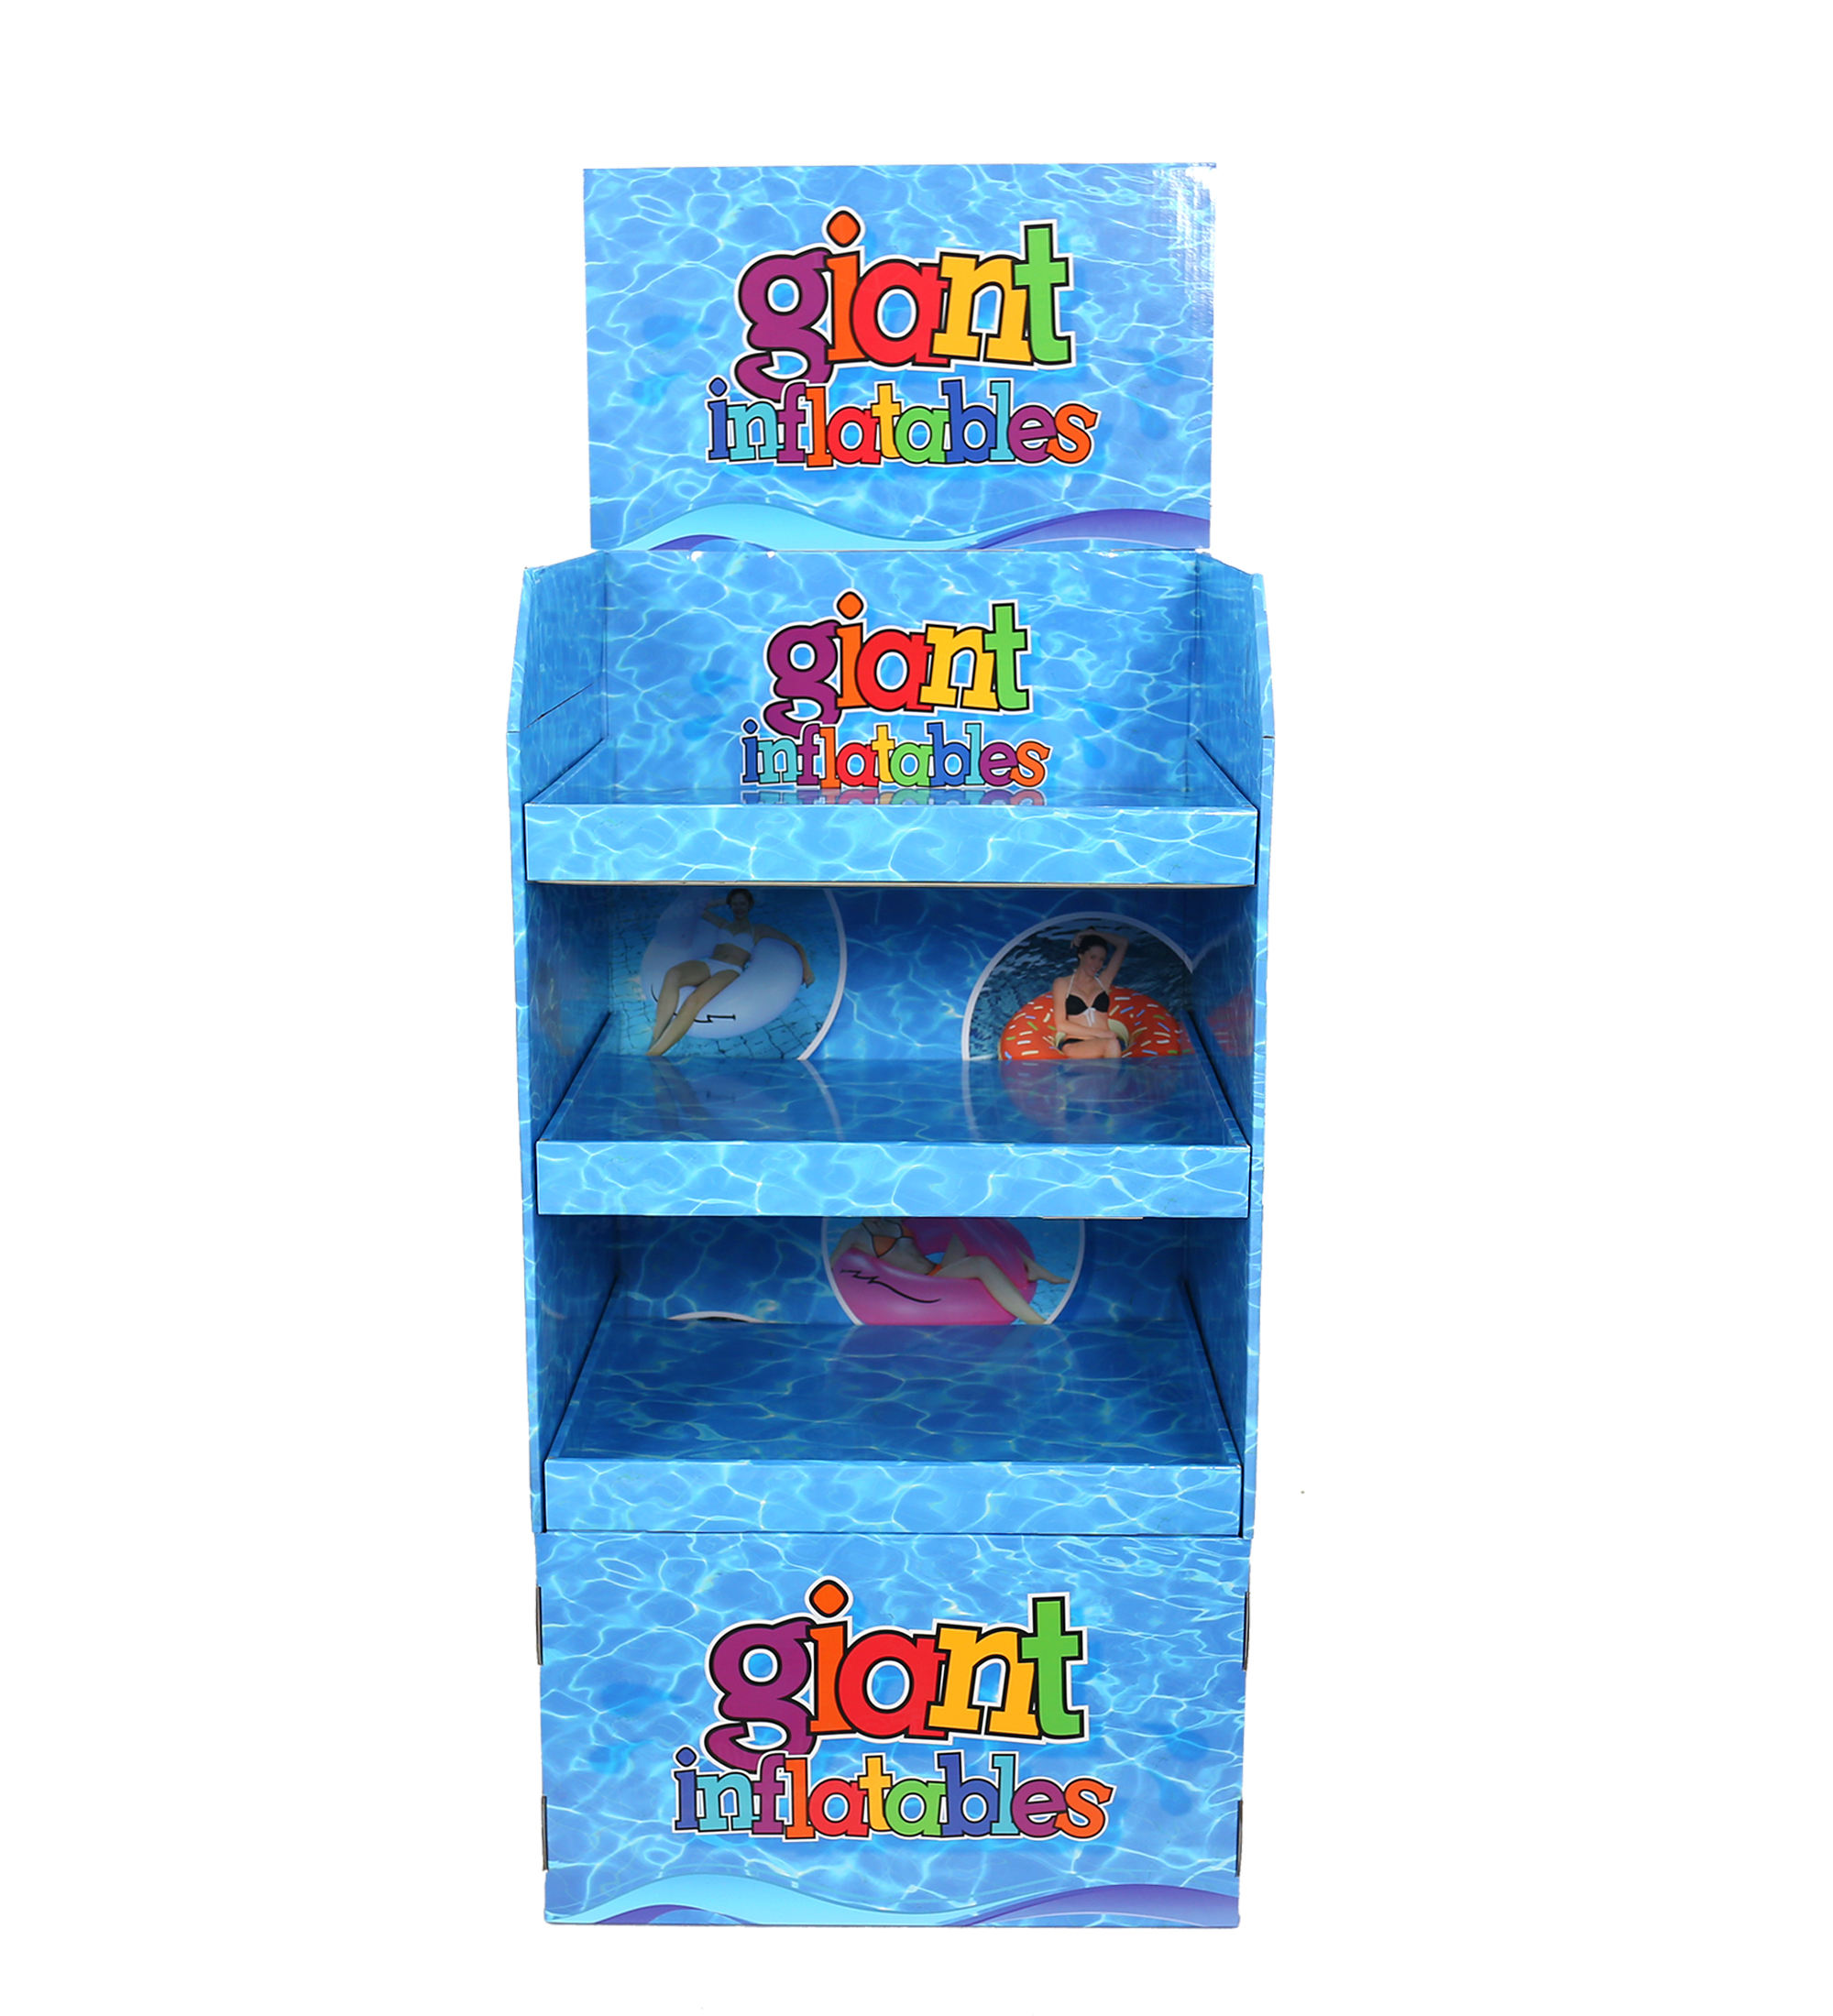 Custom Design 3 Tiers Display Stands Swim Rings/Inflatables Display Stands